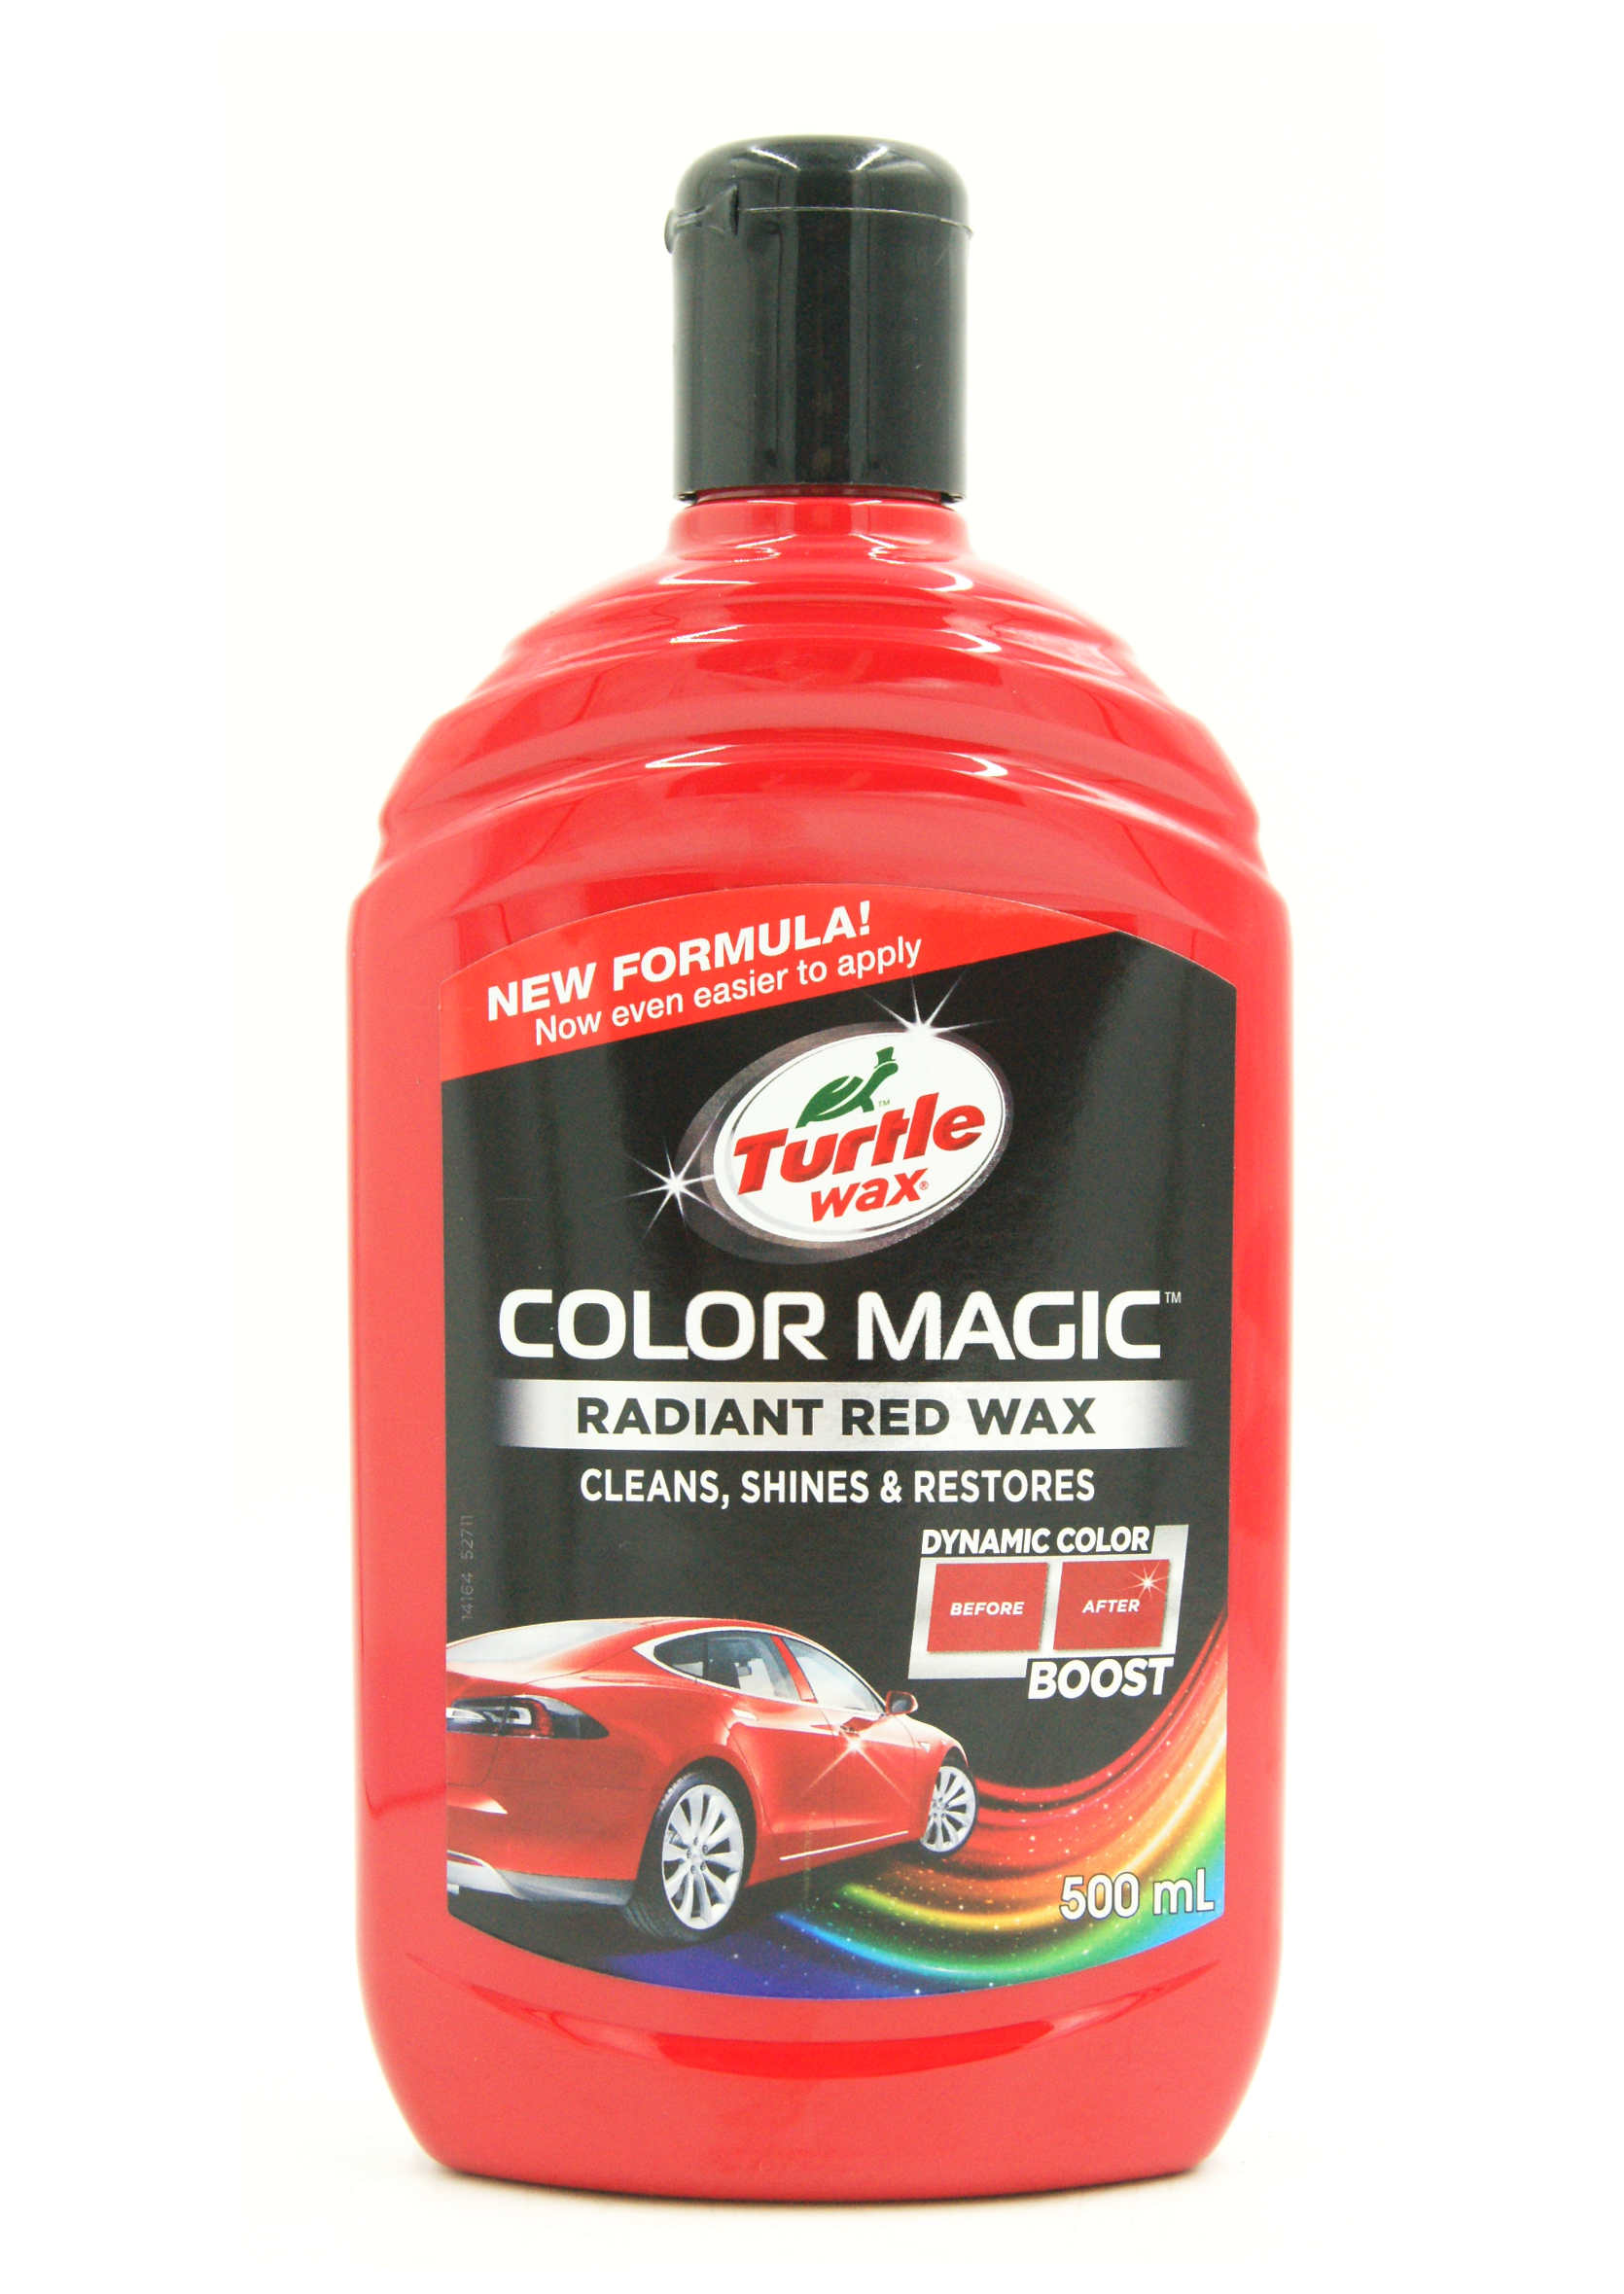 Wosk koloryzujący Czerwony 500ml + kredka do rys Turtle Wax Color Magic